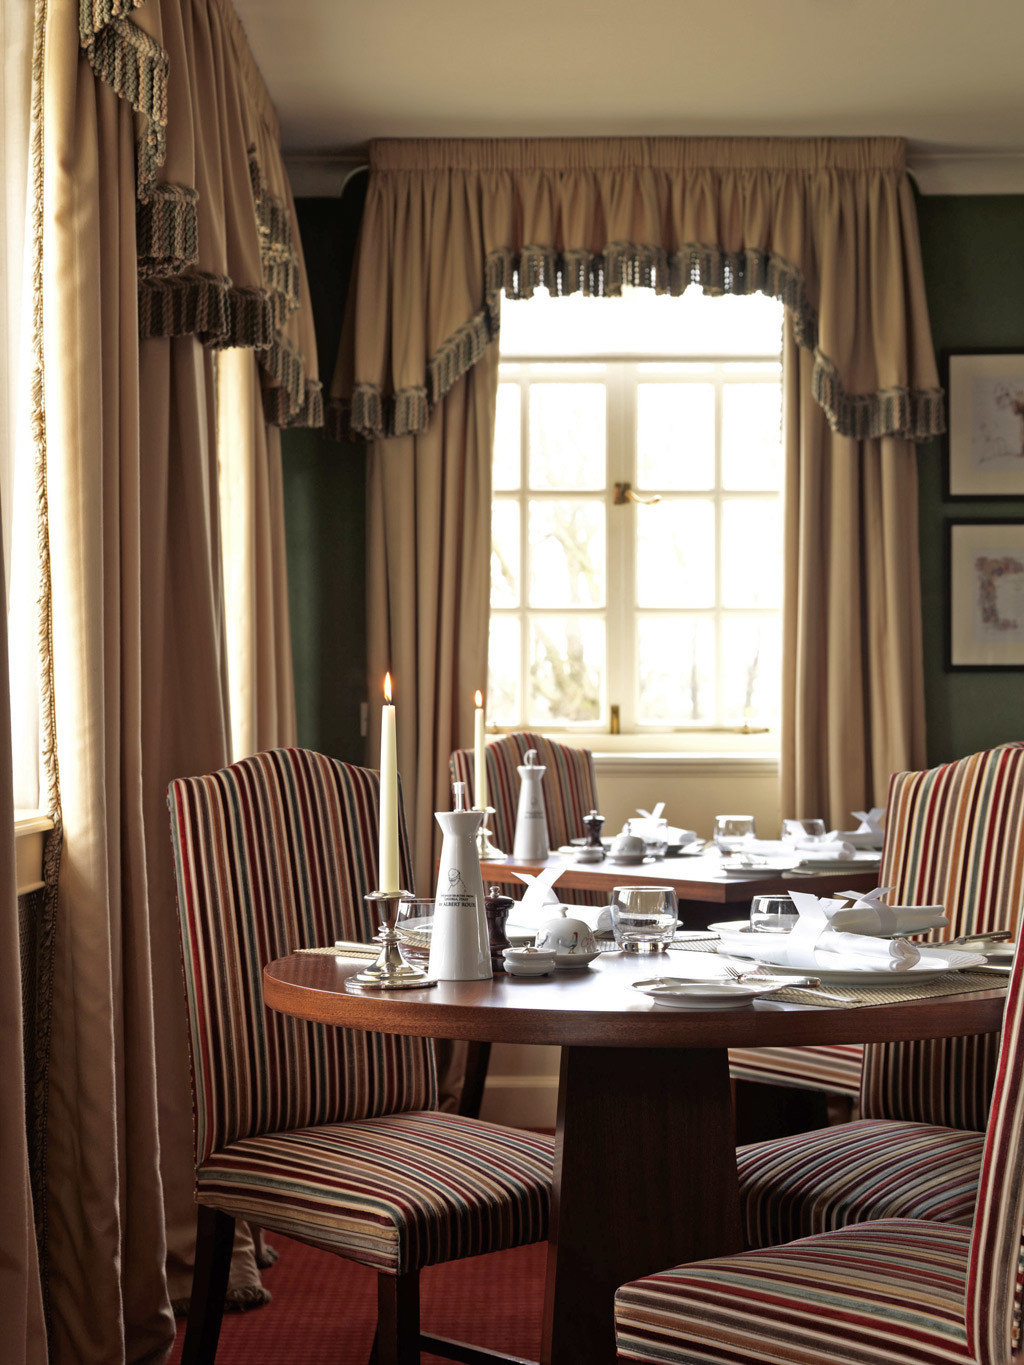 Country Dining Eat Golf Historic chair curtain living room home window treatment textile Suite cottage set dining table